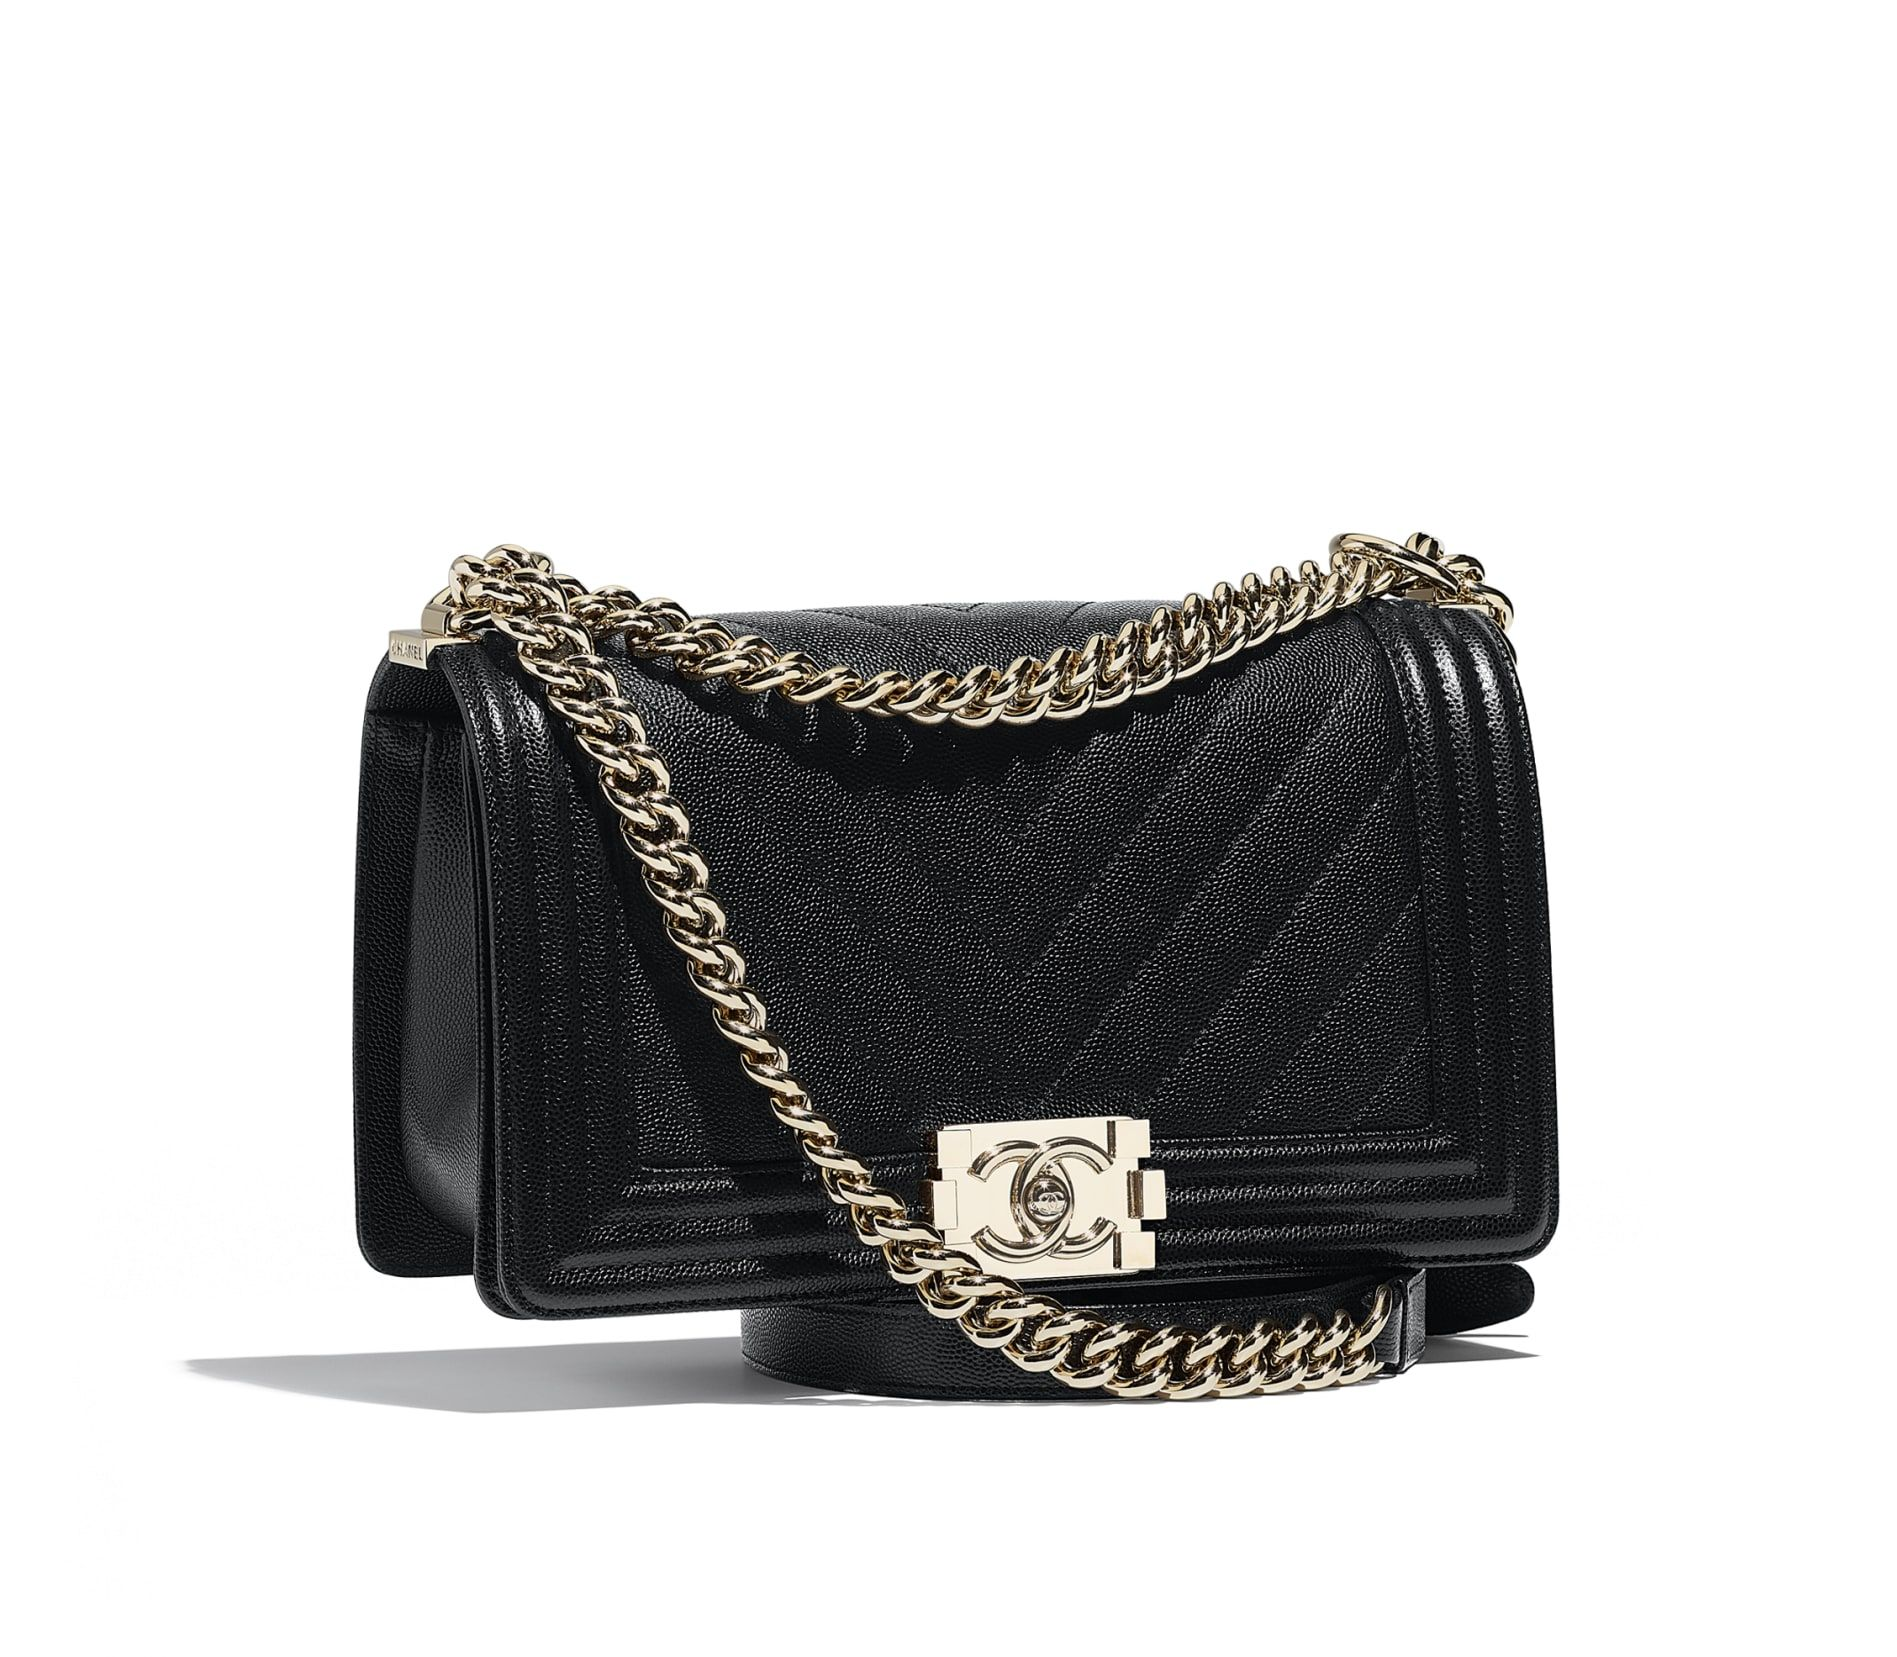 11d73f121b4b BOY CHANEL Handbag, grained calfskin & gold-tone metal, black - CHANEL BOY  CHANEL Handbag Grained calfskin & gold-tone metal Black 14.5 × 25 × 8 cmin  ...